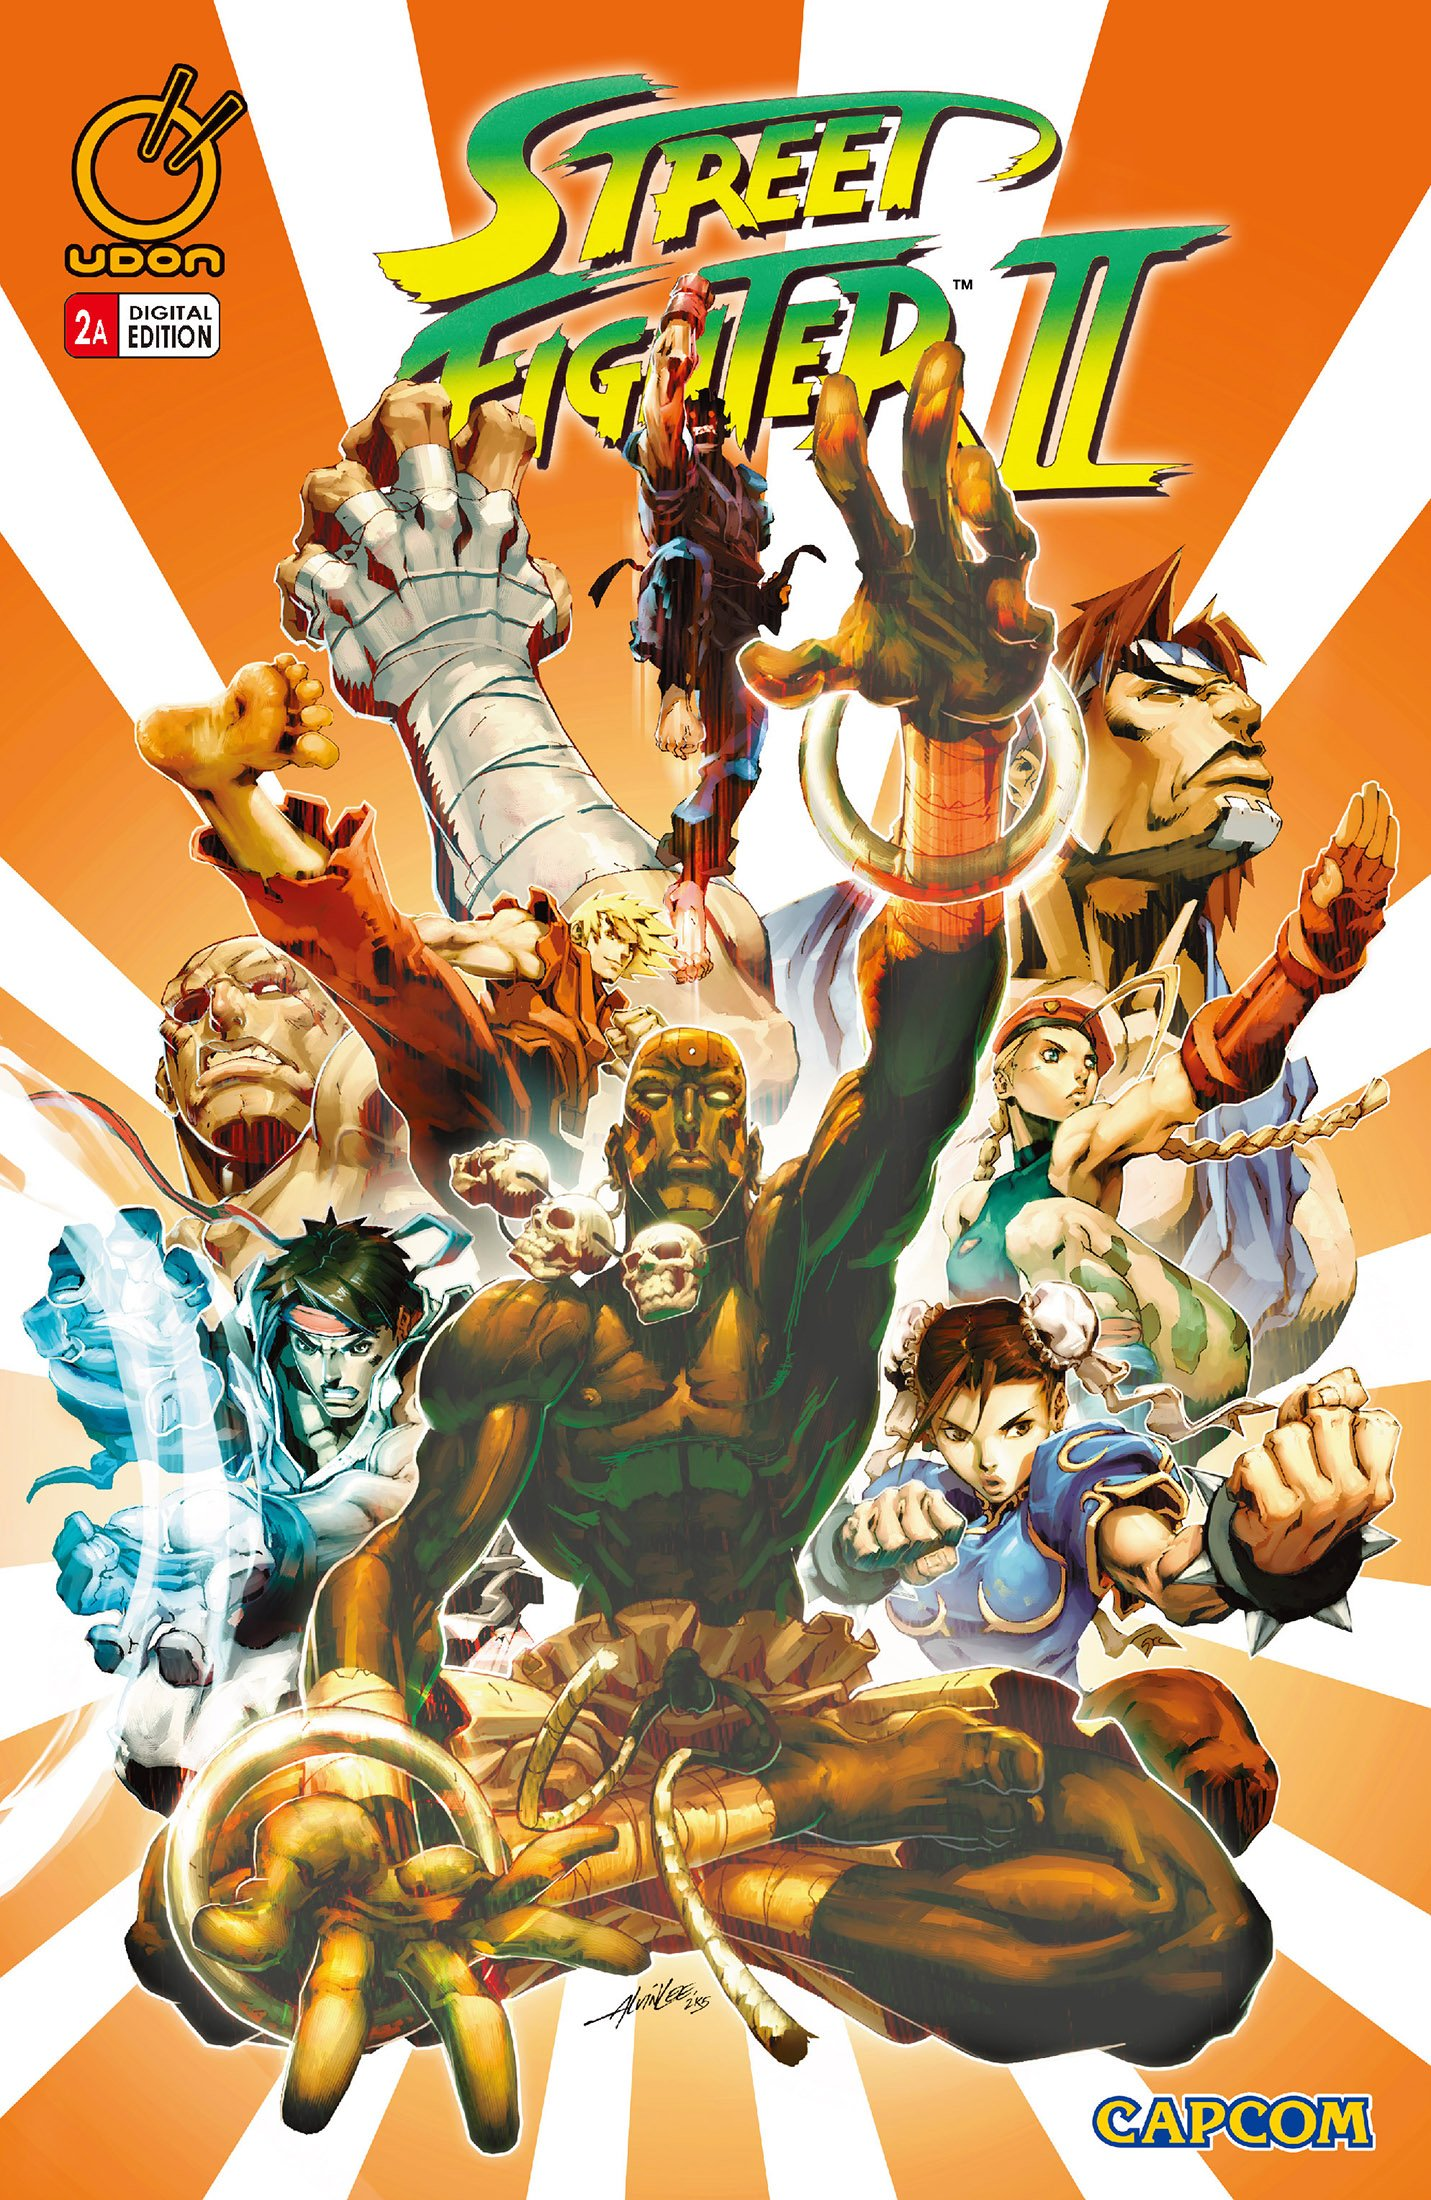 Street Fighter II Issue 2 (December 2005) (cover a)